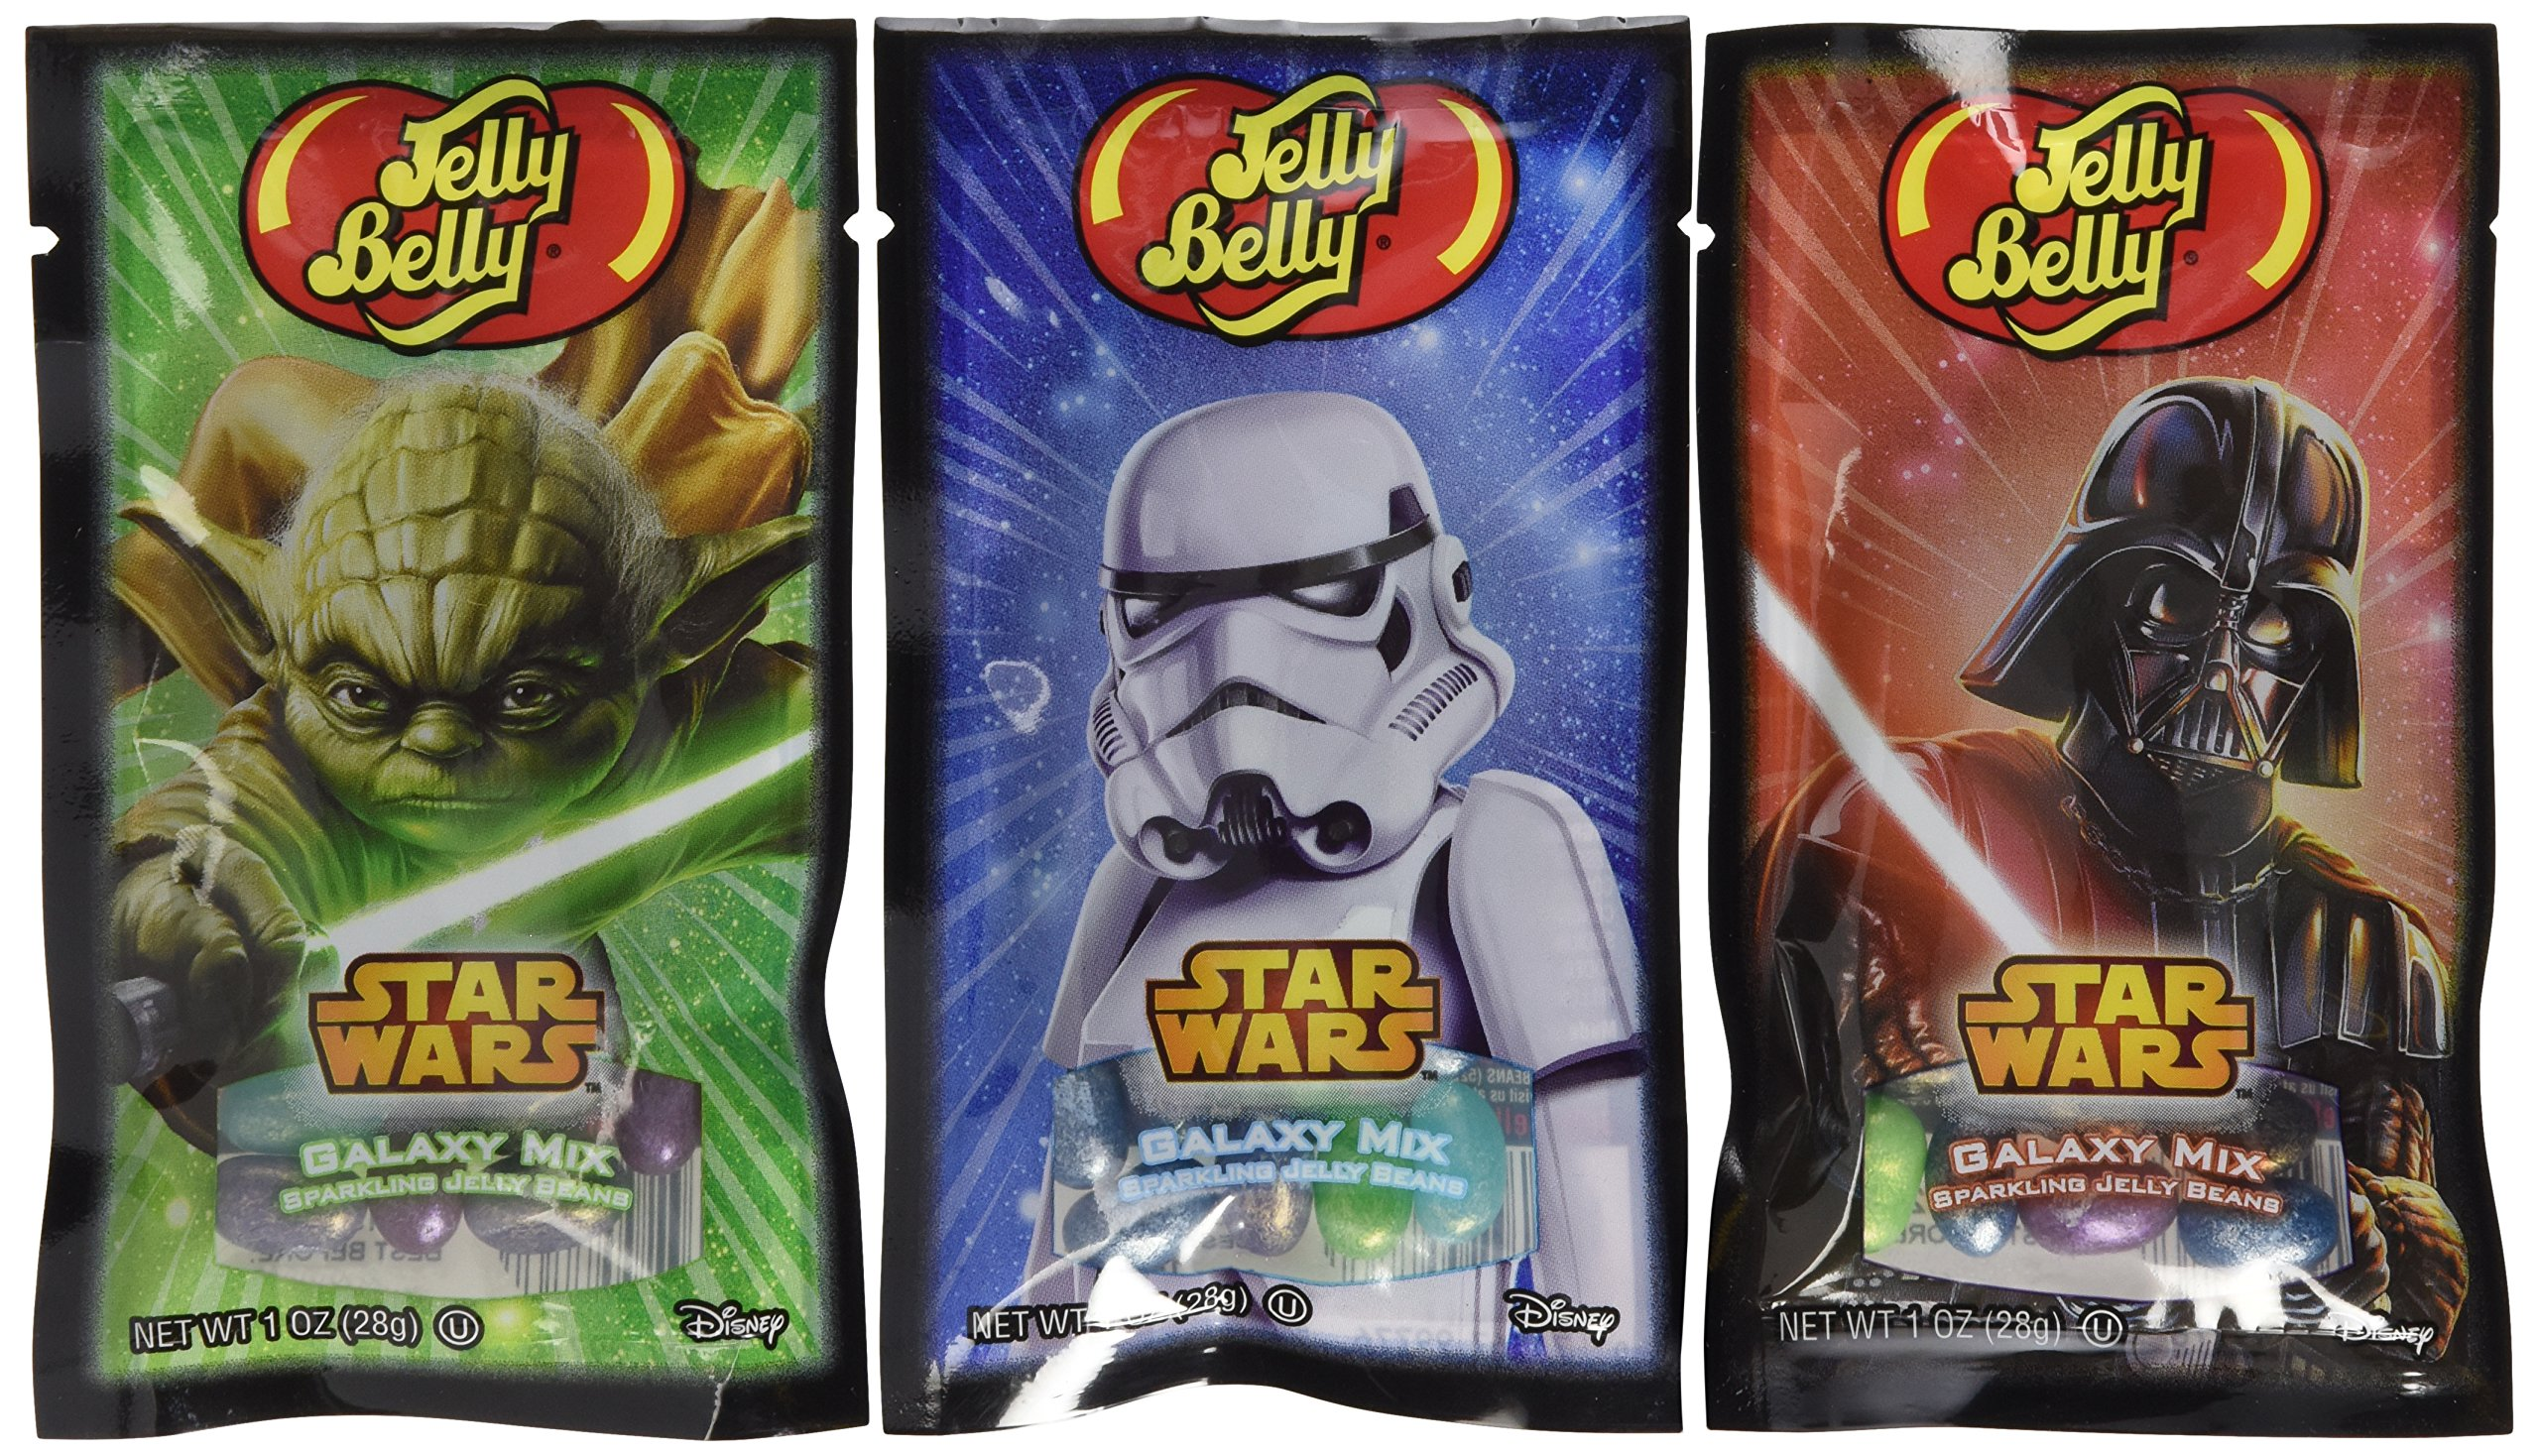 Jelly Belly Star Wars Galaxy Mix Sparkling Jelly Beans Mix - 1 Oz Bag (8 Bags) 10